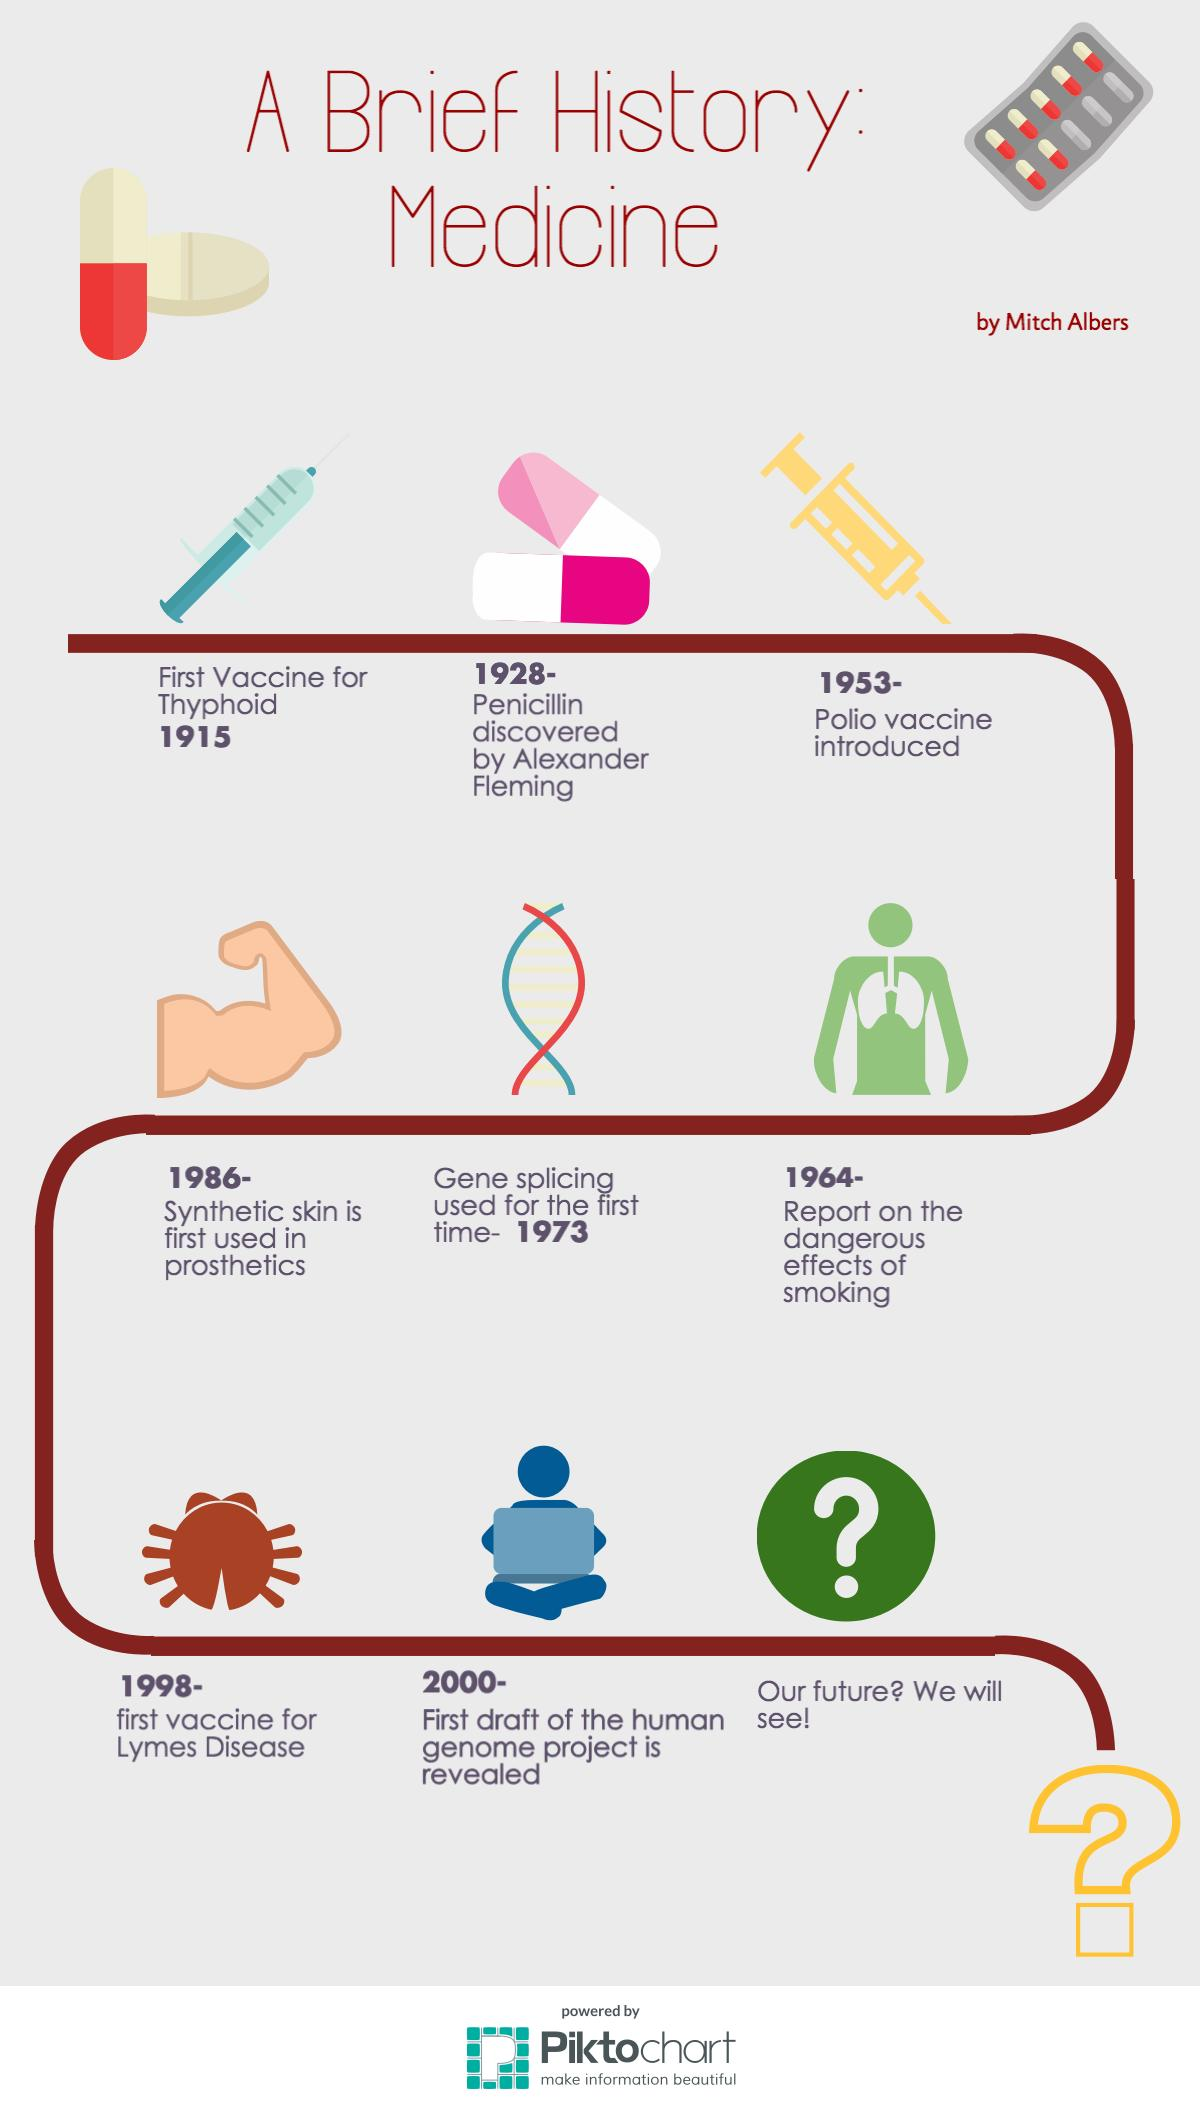 Then and Now: A Brief History of Medicine